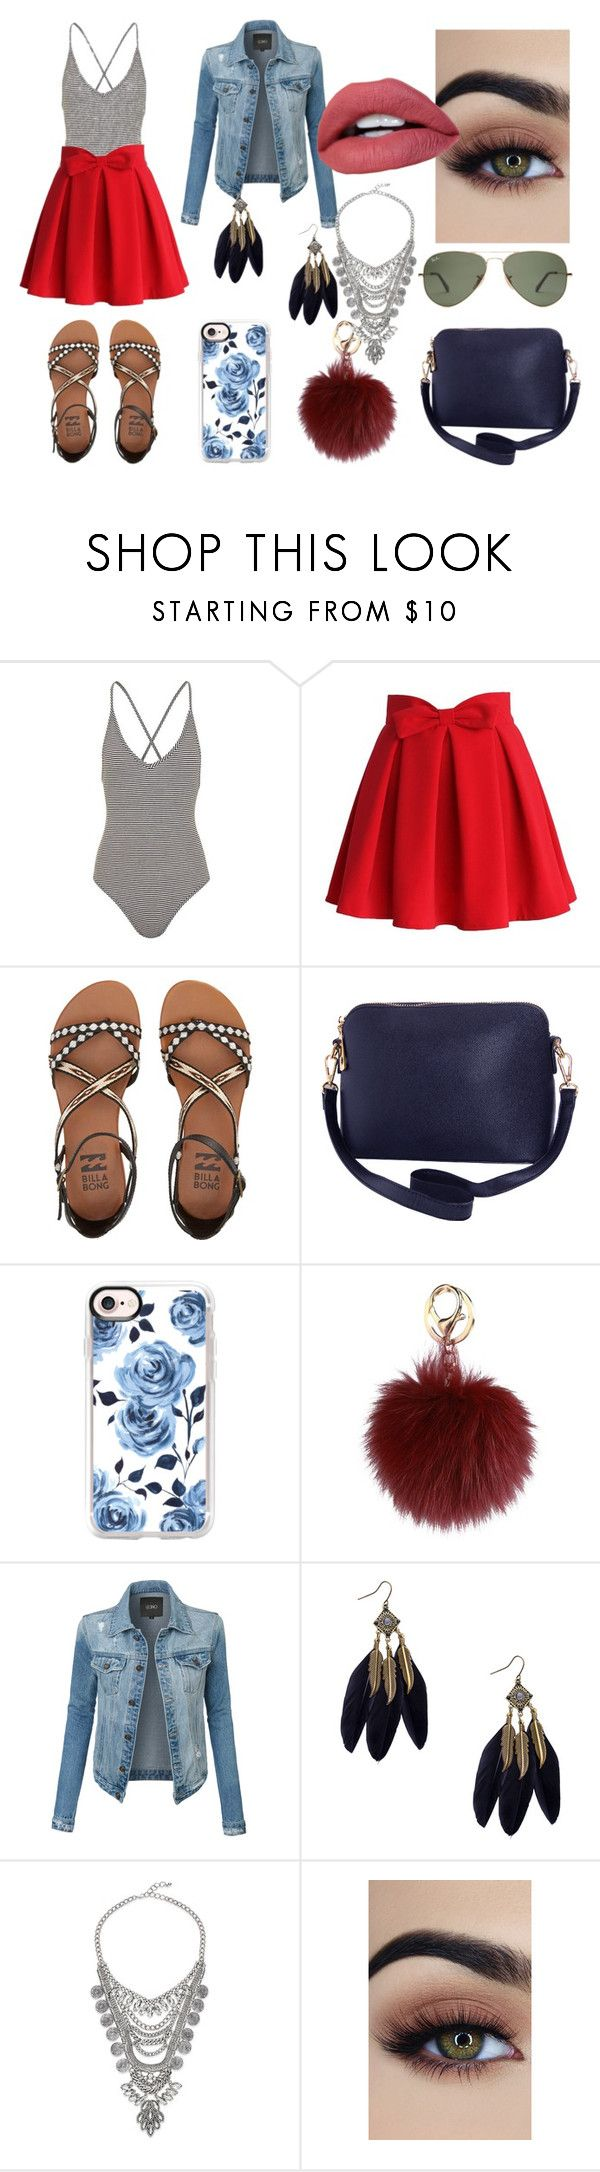 """Xx"" by pinkybunny ❤ liked on Polyvore featuring Topshop, Chicwish, Billabong, Humble Chic, Casetify and LE3NO"